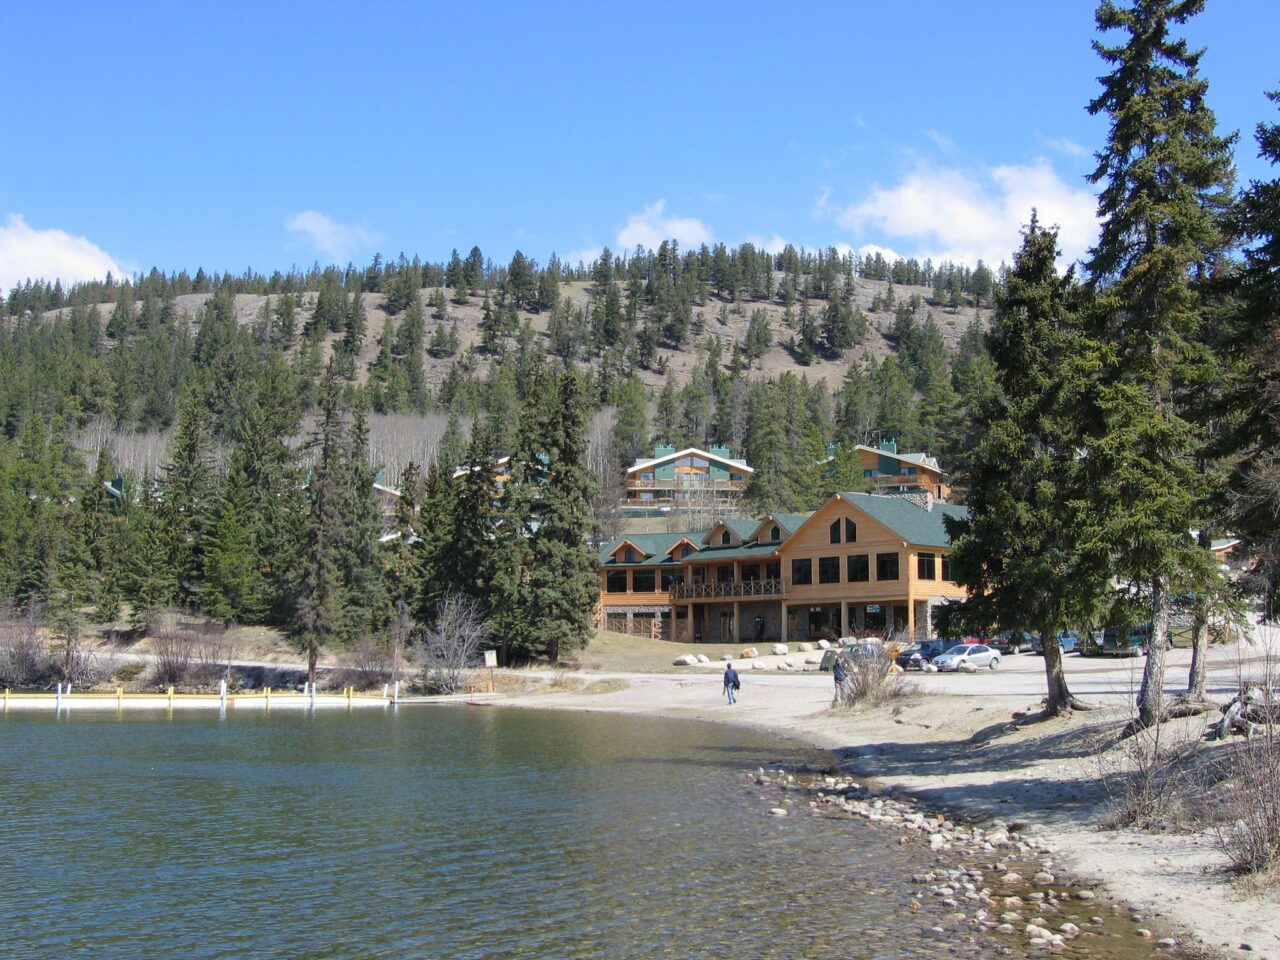 A Superb Guide To The Pyramid Lake Resort 1